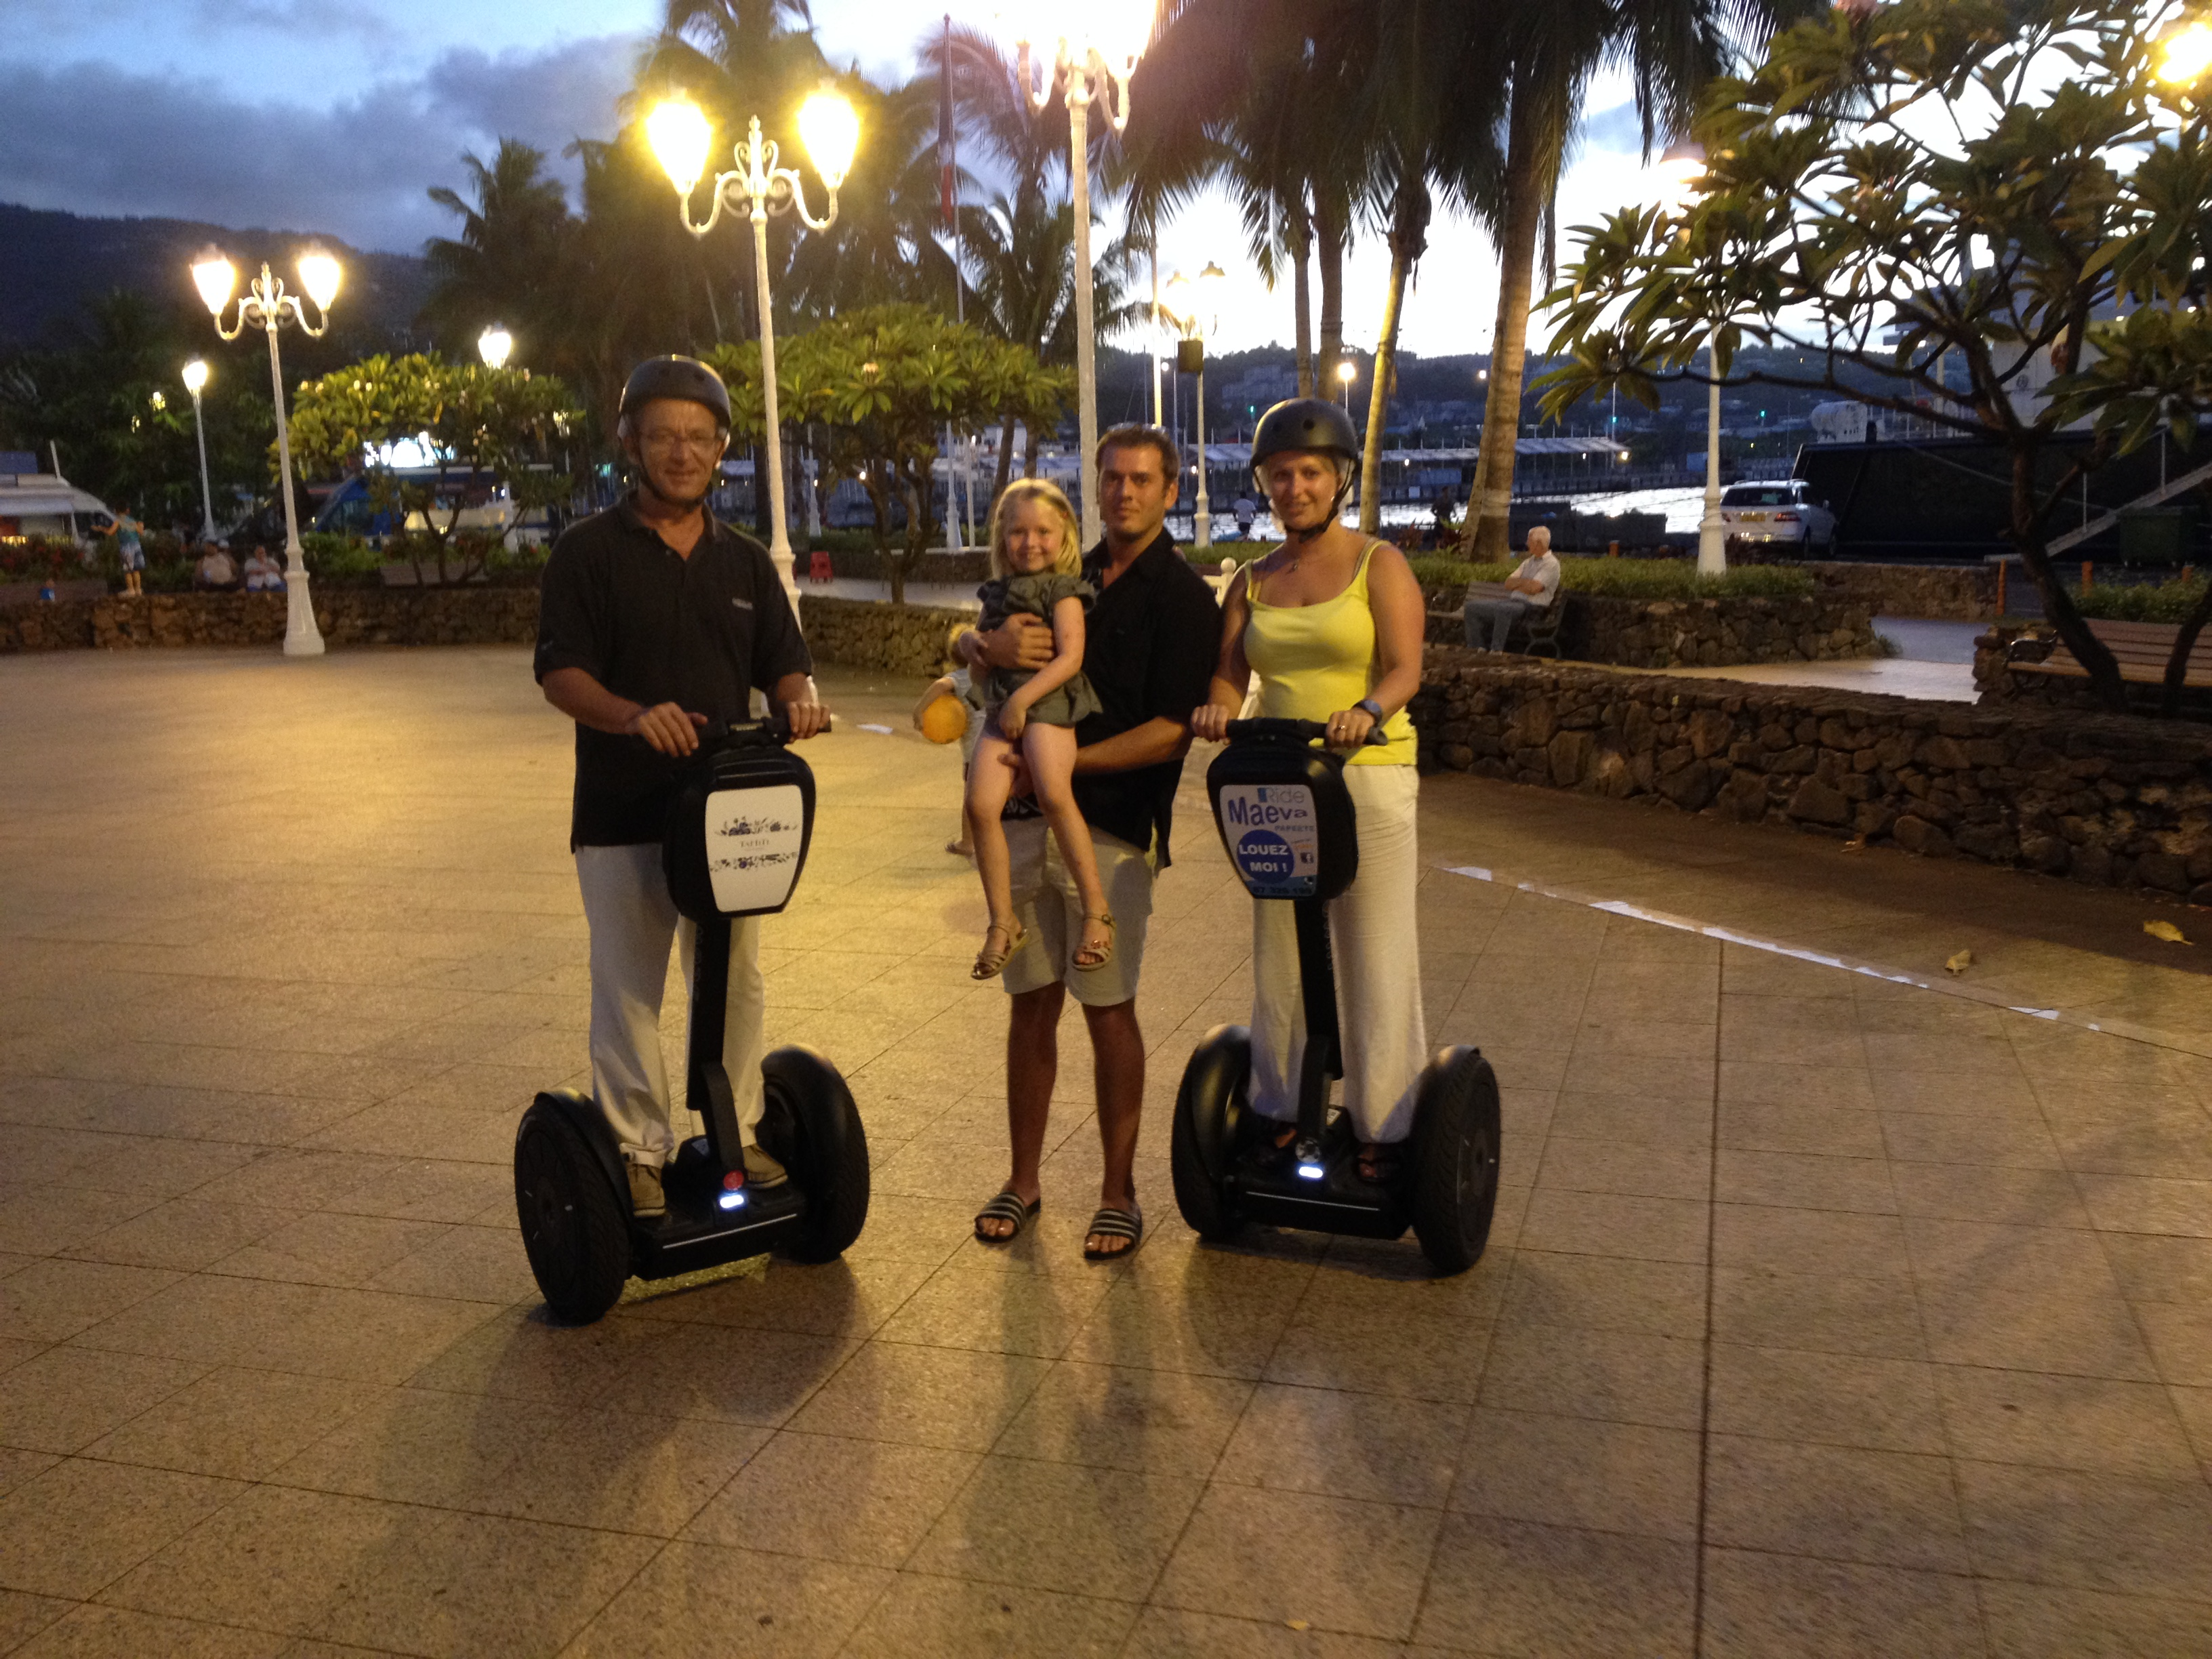 Place Vaiete by night with Segway